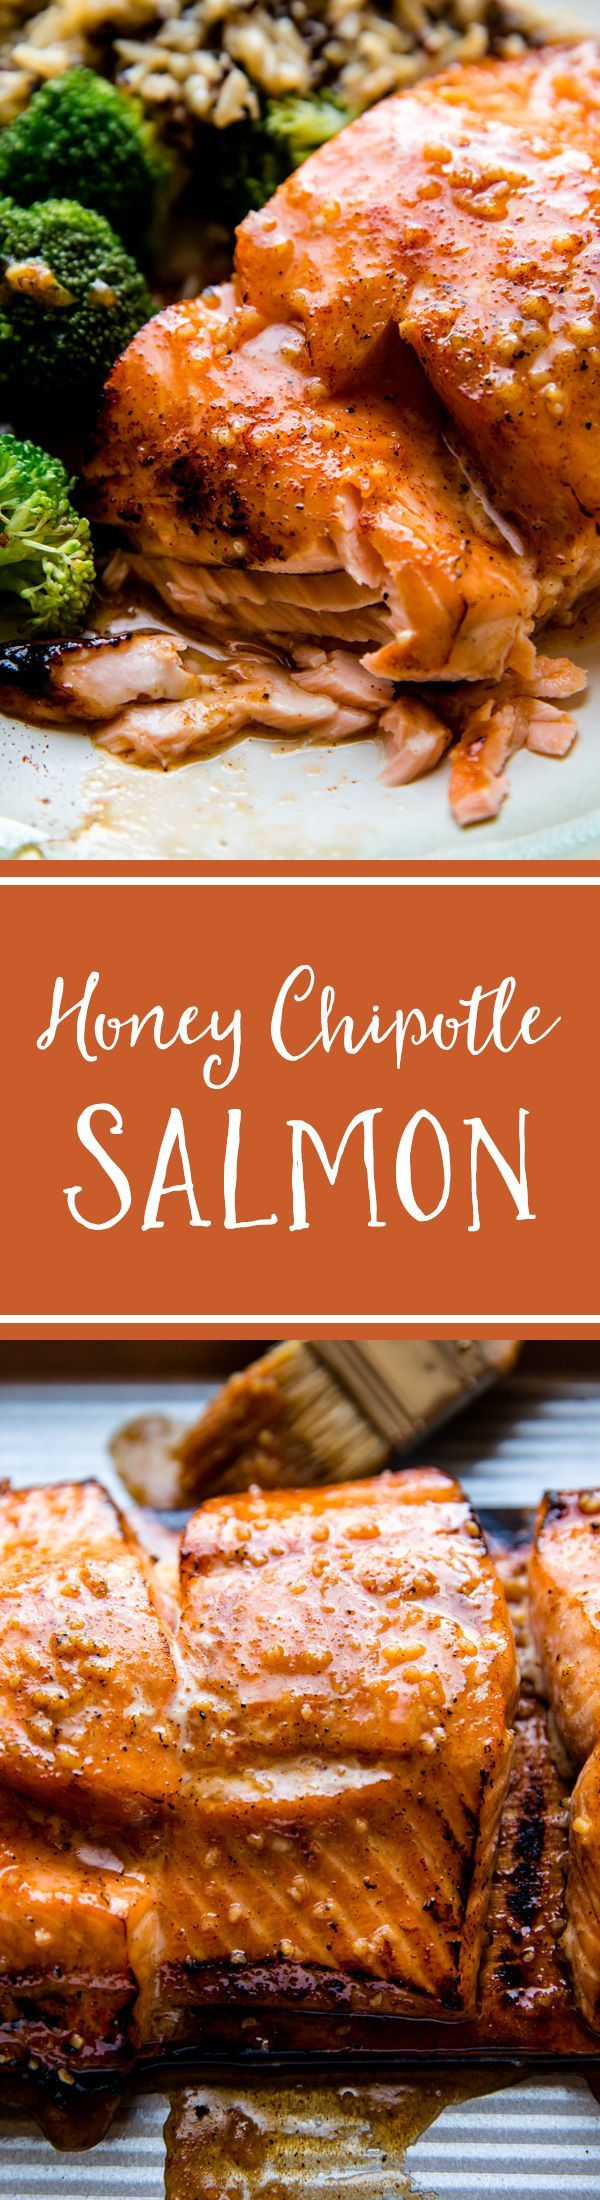 30 minute dinner! 5 ingredient honey chipotle salmon with delicious garlic honey butter on top! Moist and tender with crispy edges. Grilled or baked salmon! Recipe on sallysbakingaddiction.com